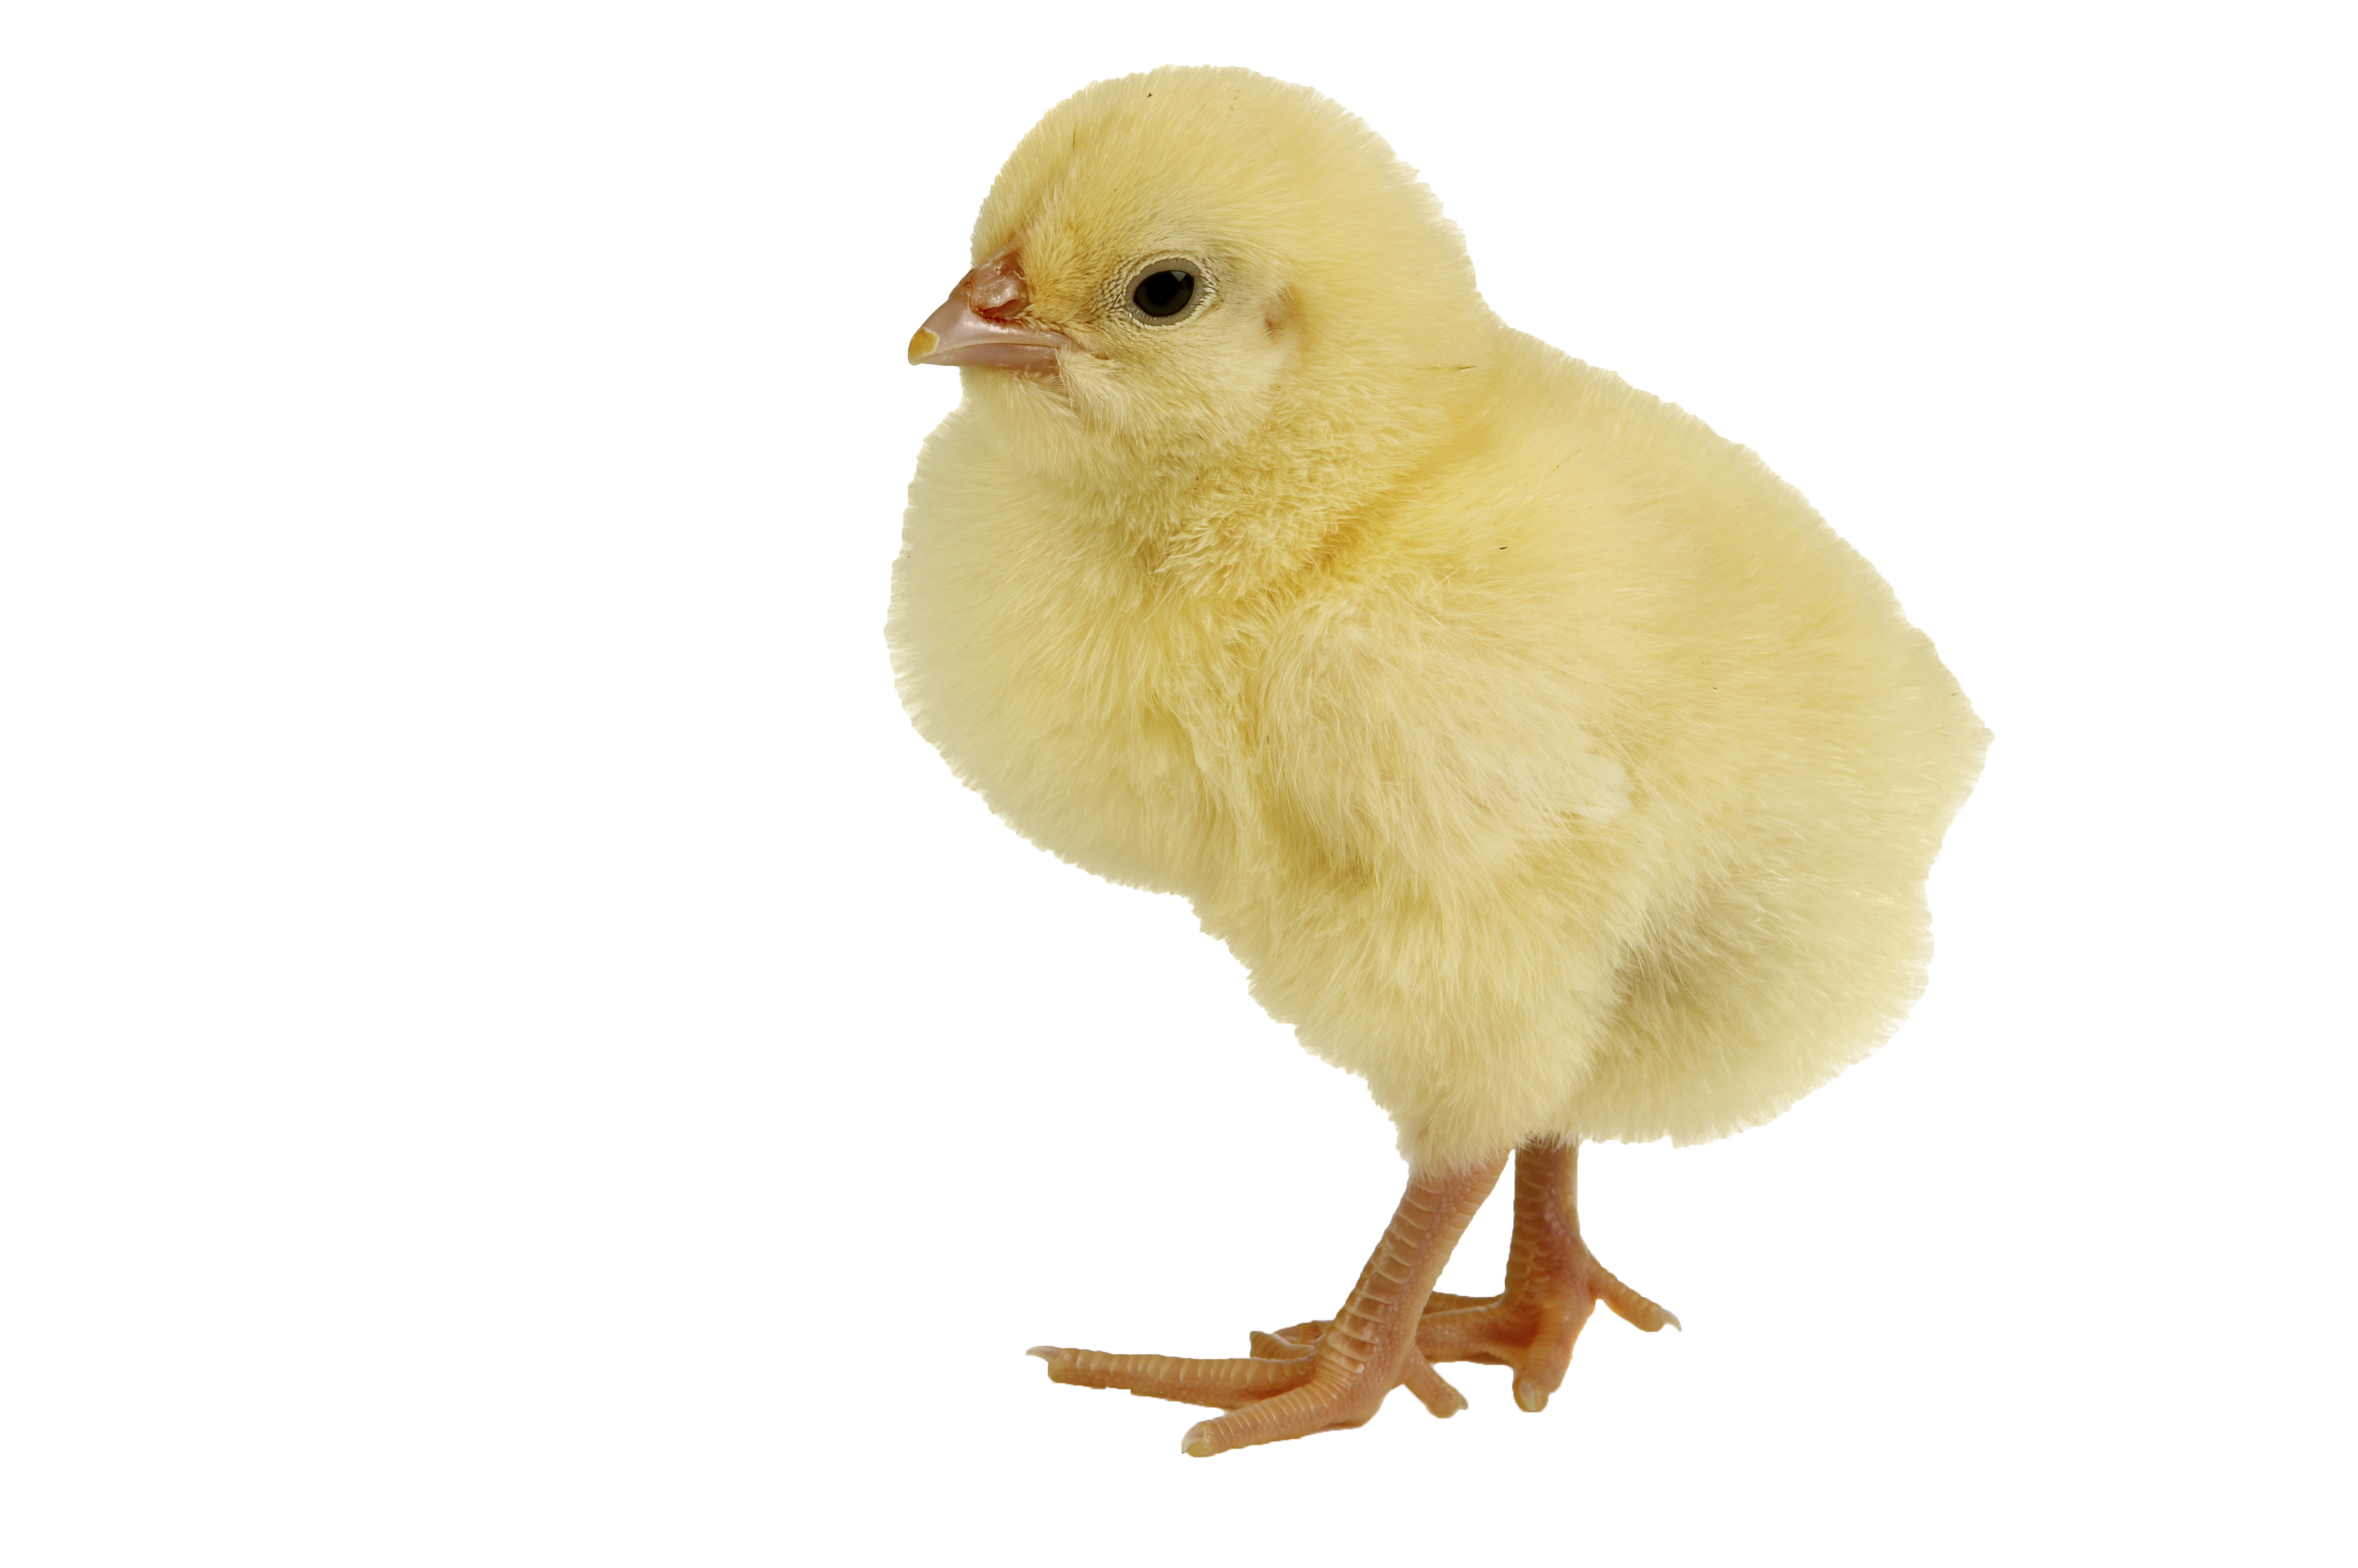 Chick transparent yellow. Chicken png pictures free